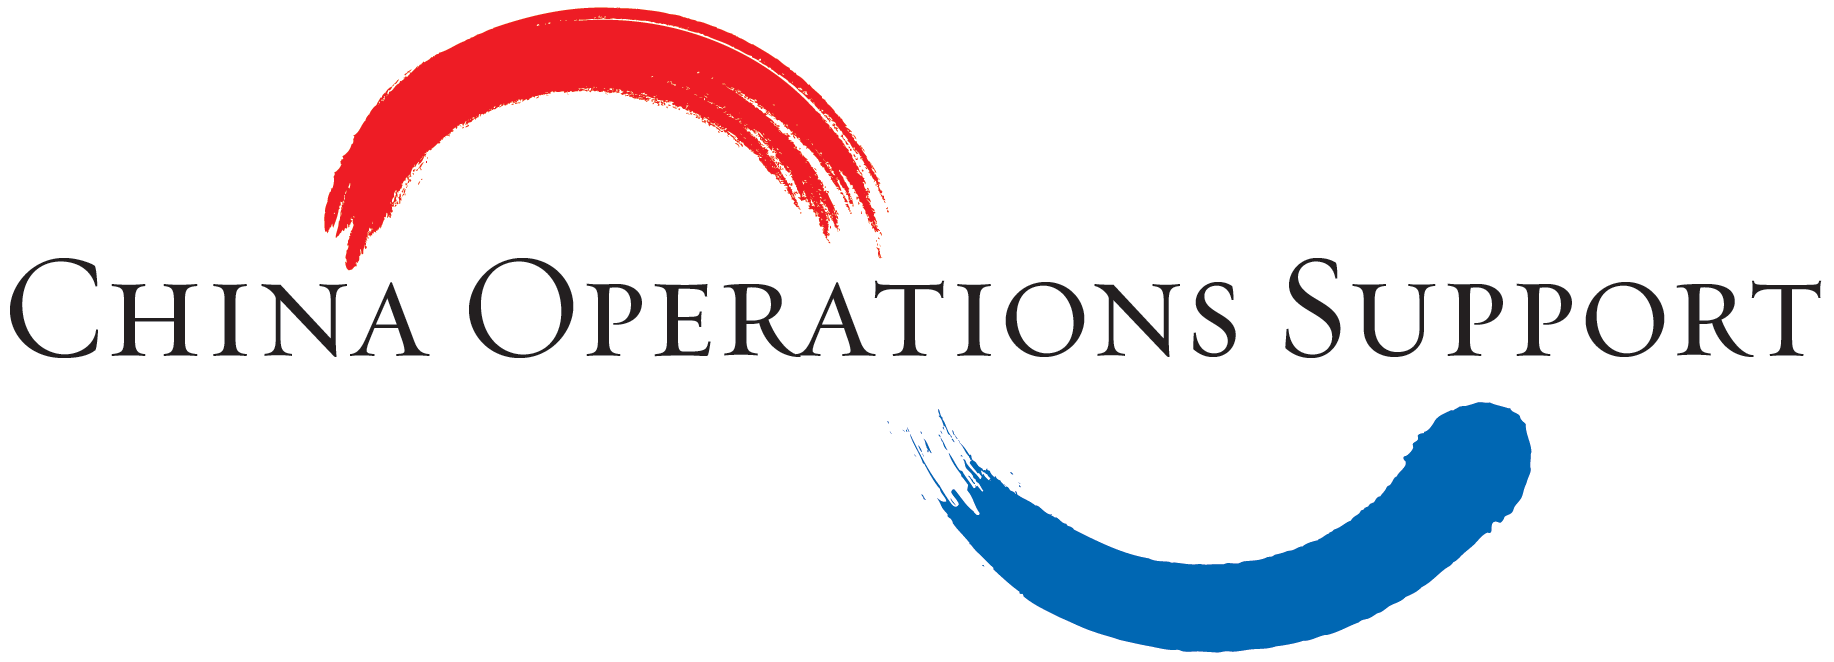 China Operations Support